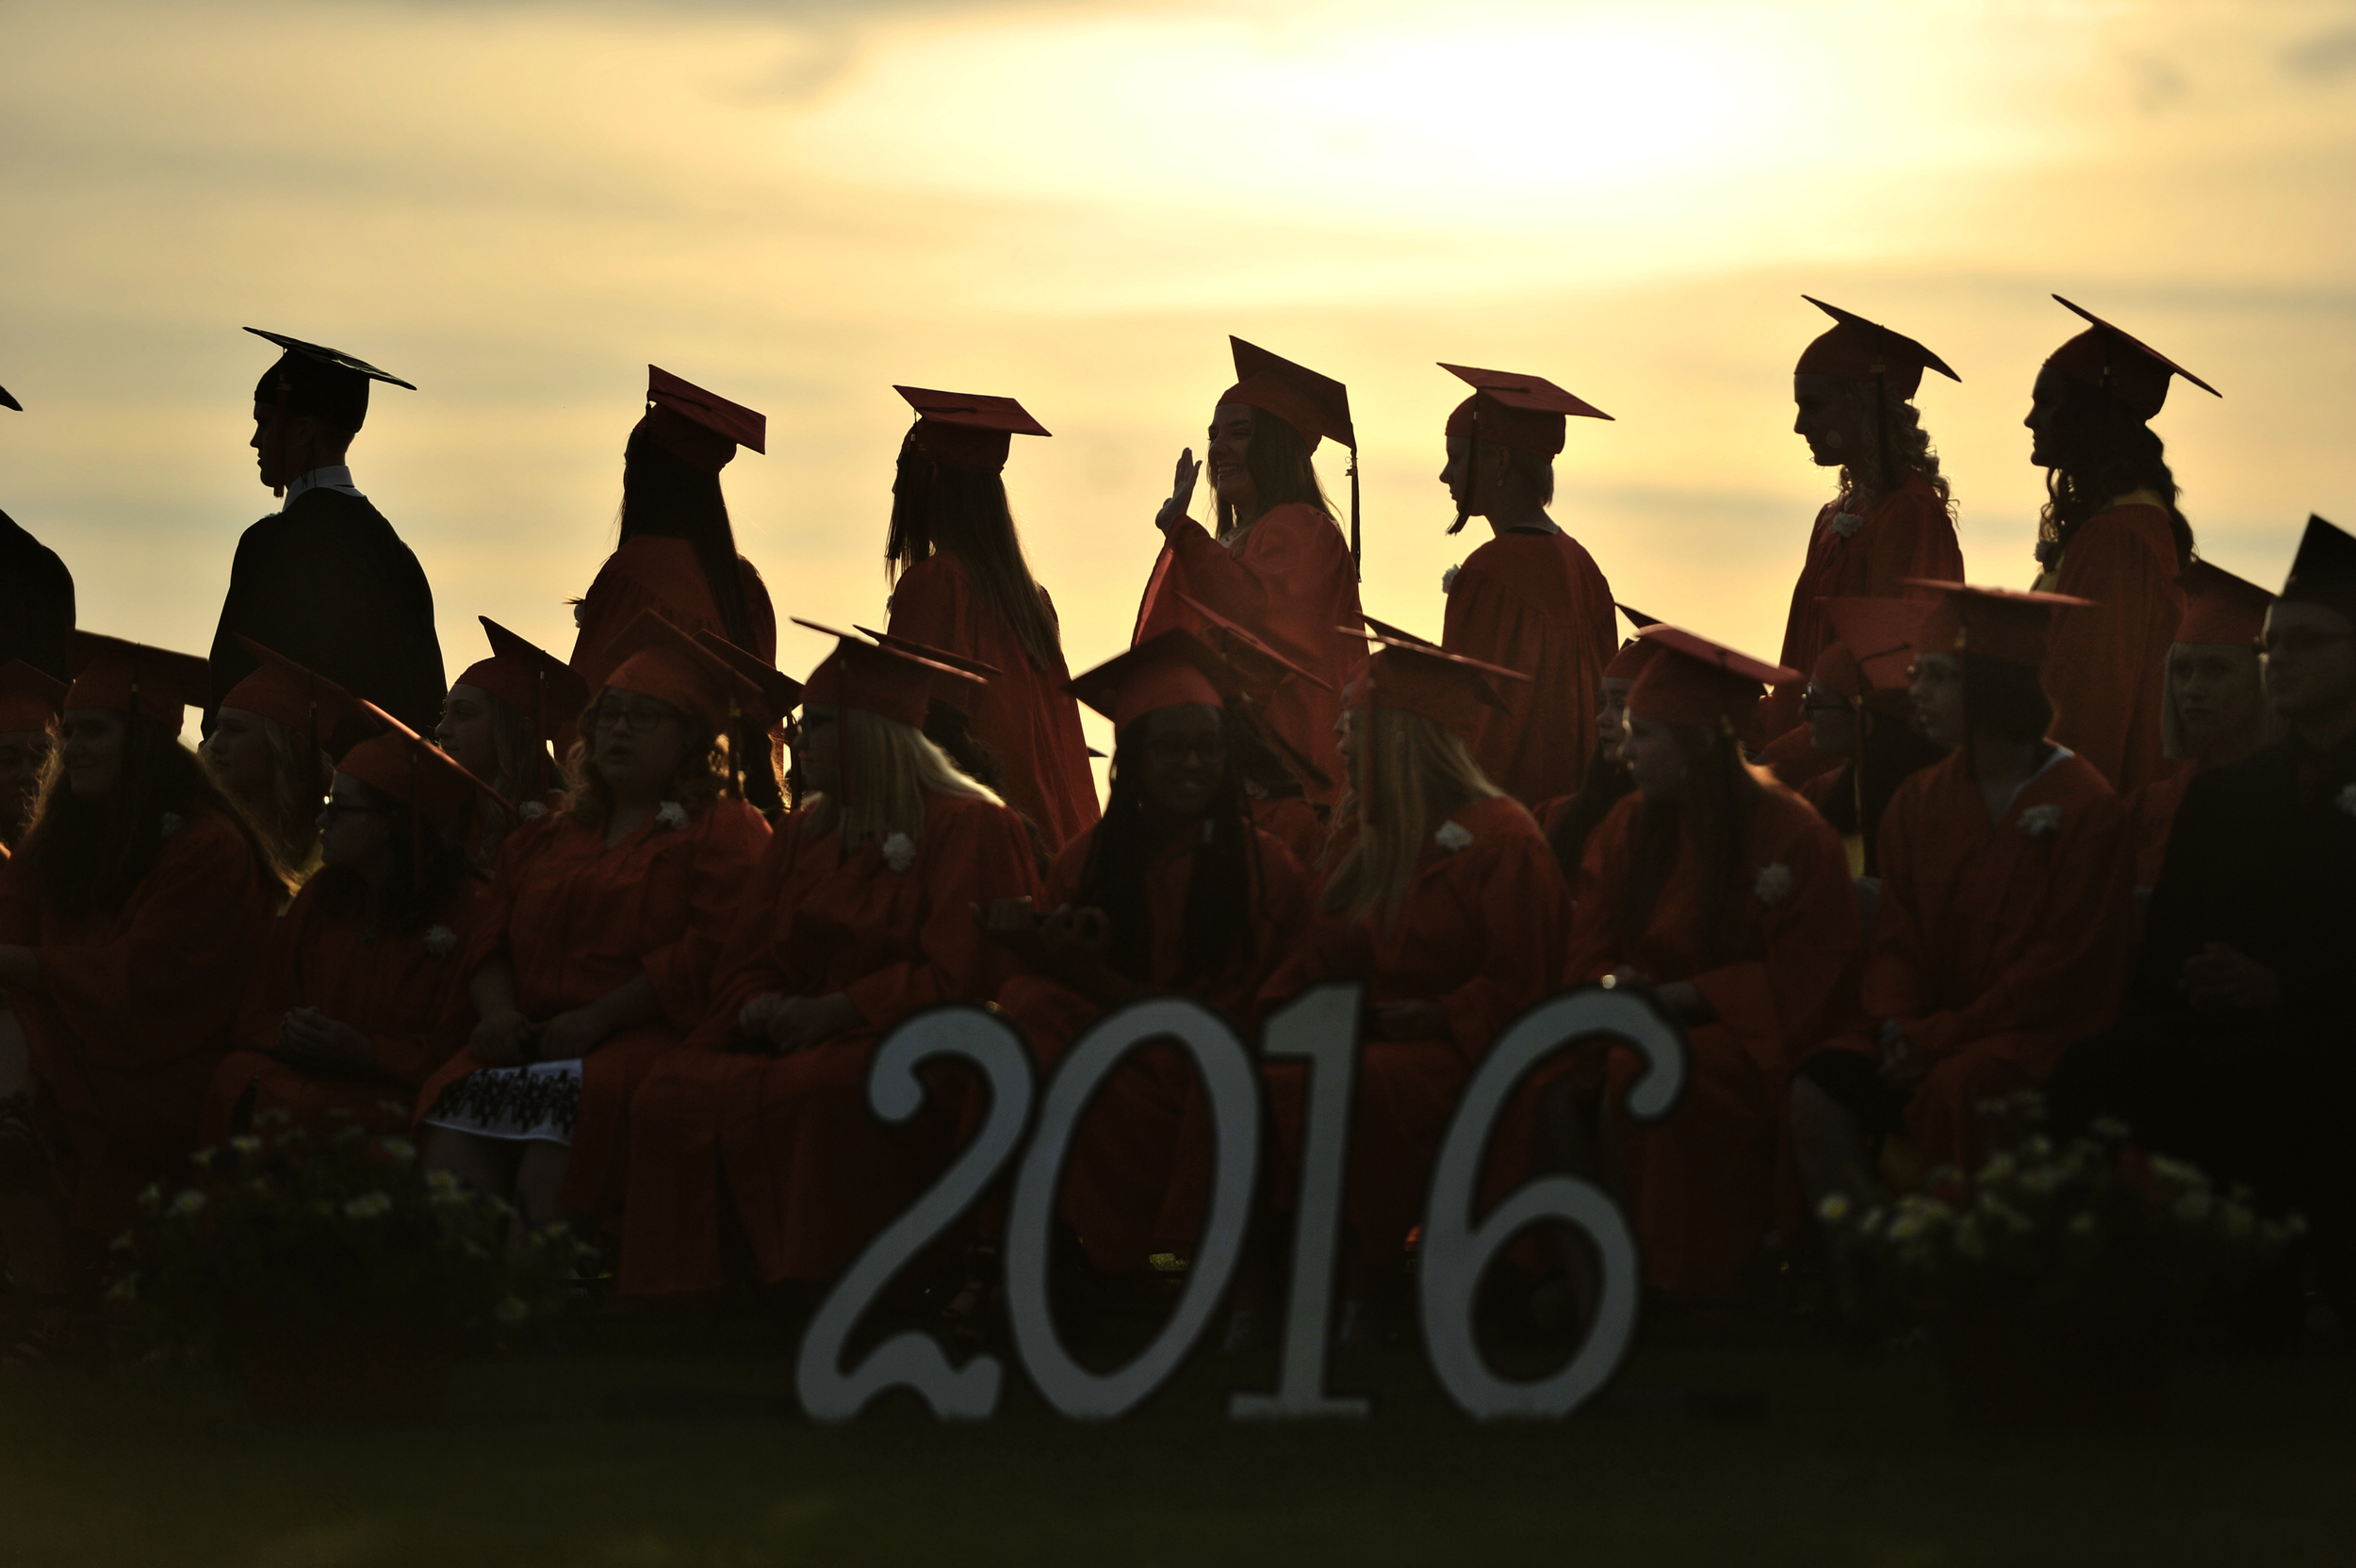 Graduates line up to receive their diplomas at the commencement ceremony for Schuylkill Valley High School in Reading, PA, on June 10, 2016. (Sarah Stier: Reading Eagle)